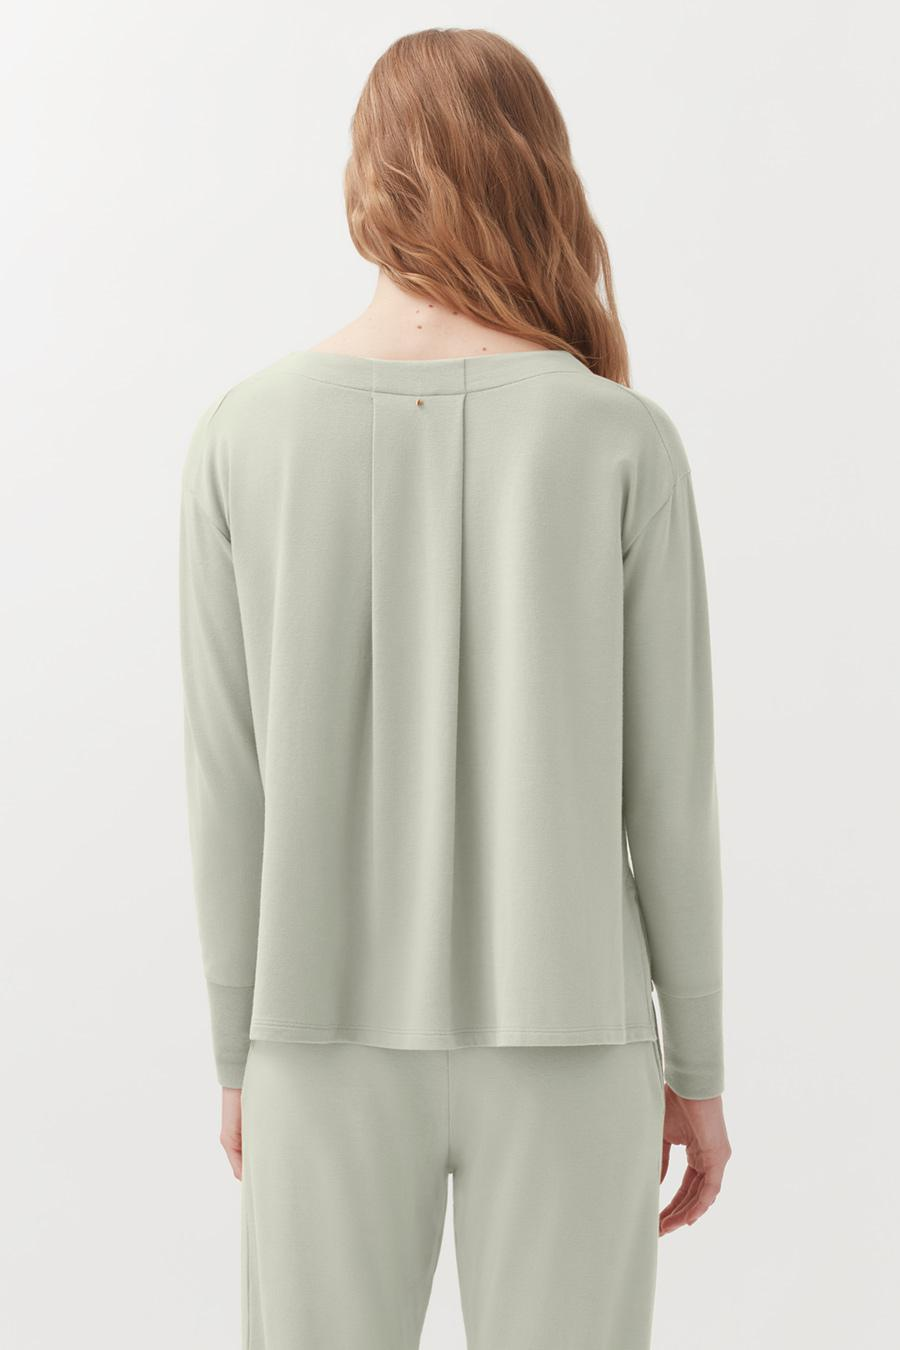 Women's French Terry V-Neck Sweatshirt in Sage | Size: 2